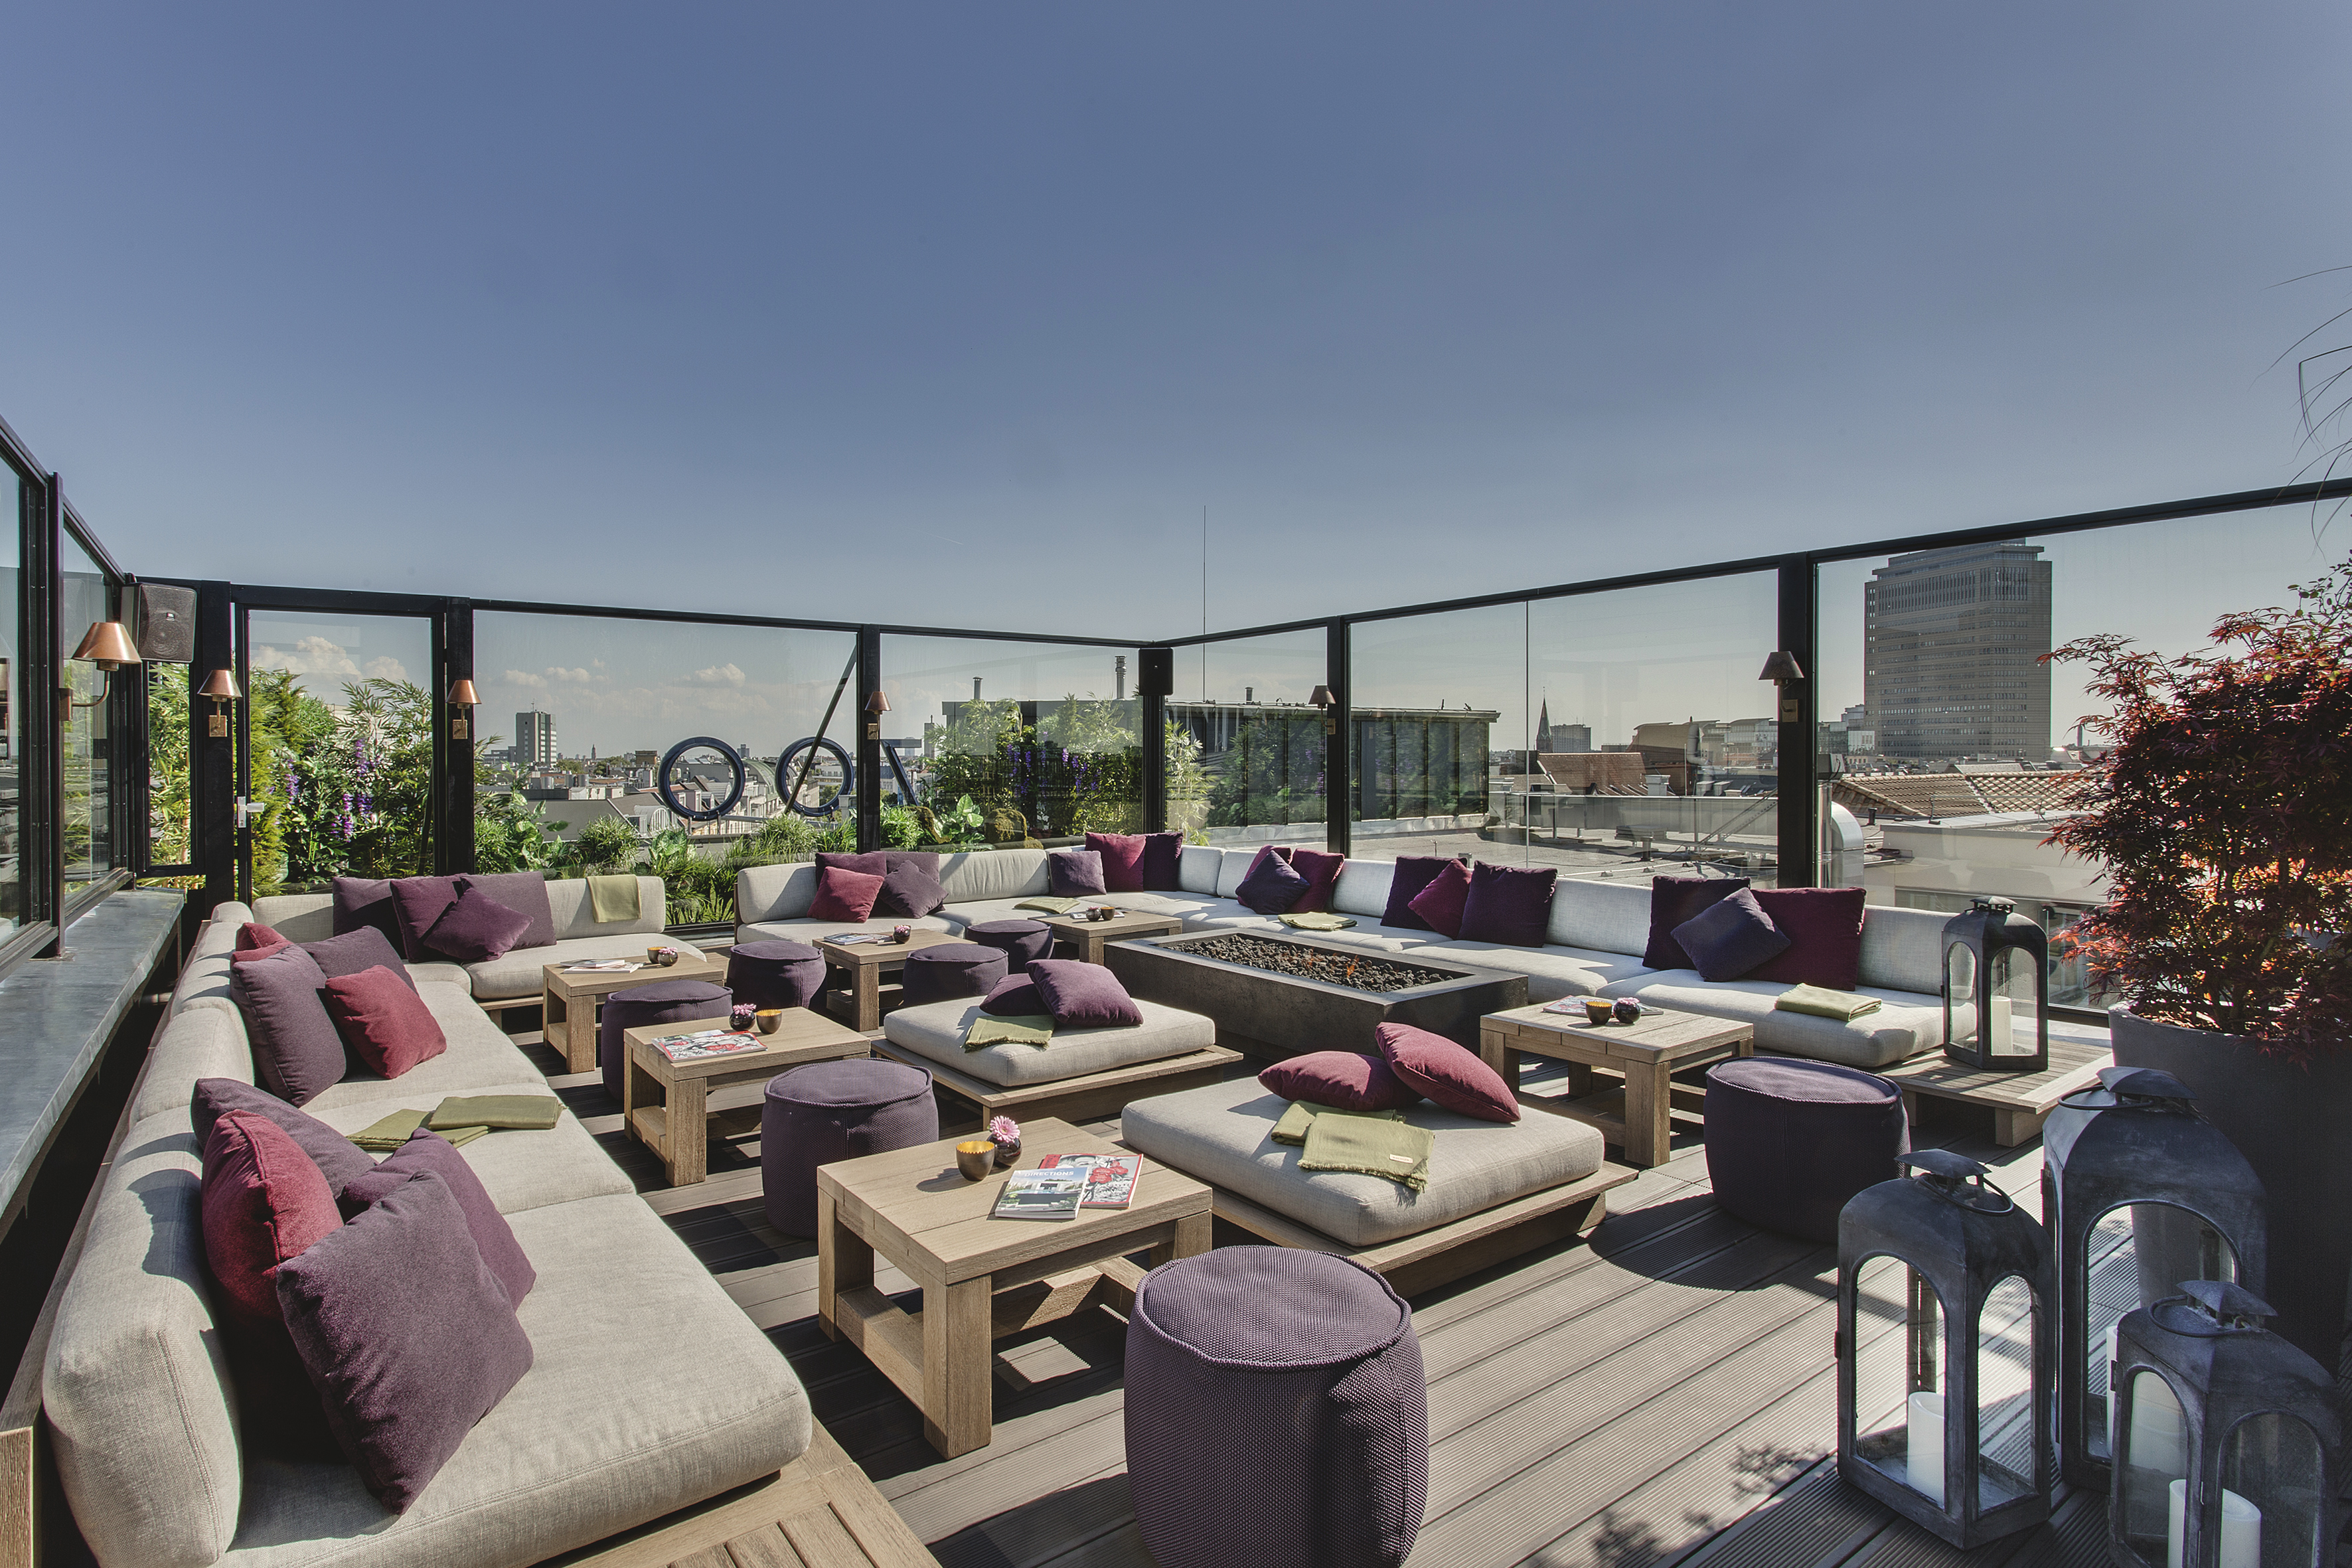 Hotel Zoo rooftop by day 03 g